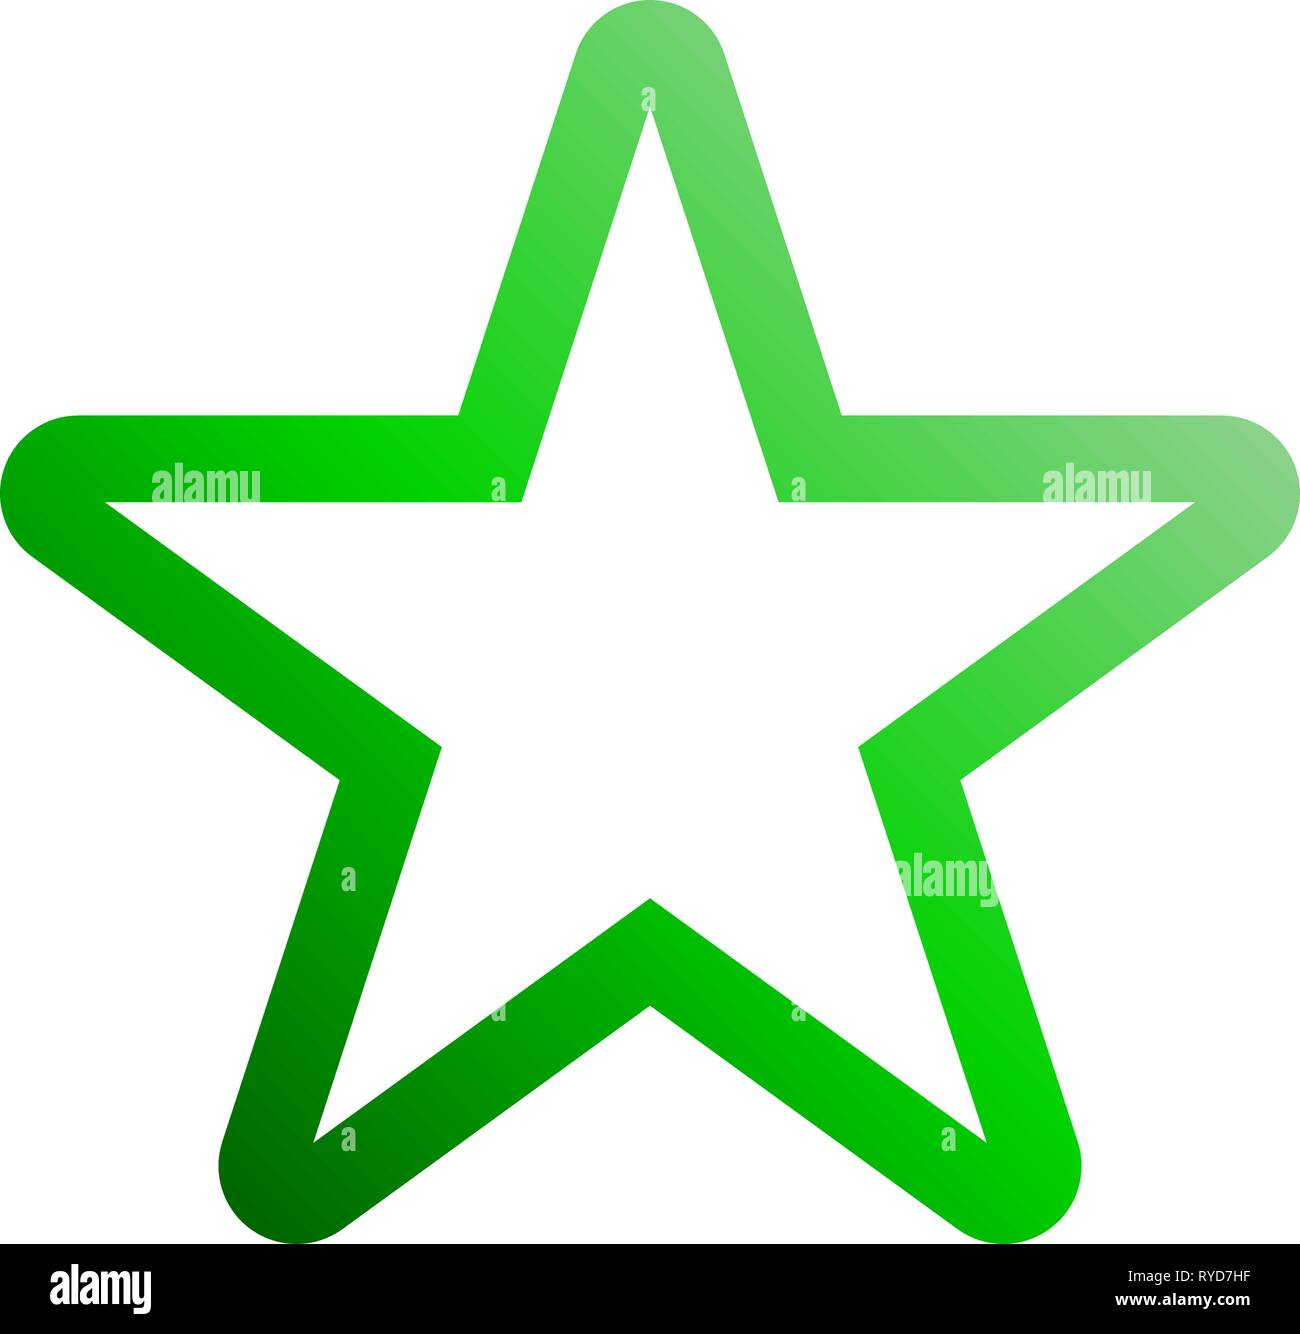 Star symbol icon - green gradient outline, 5 pointed rounded